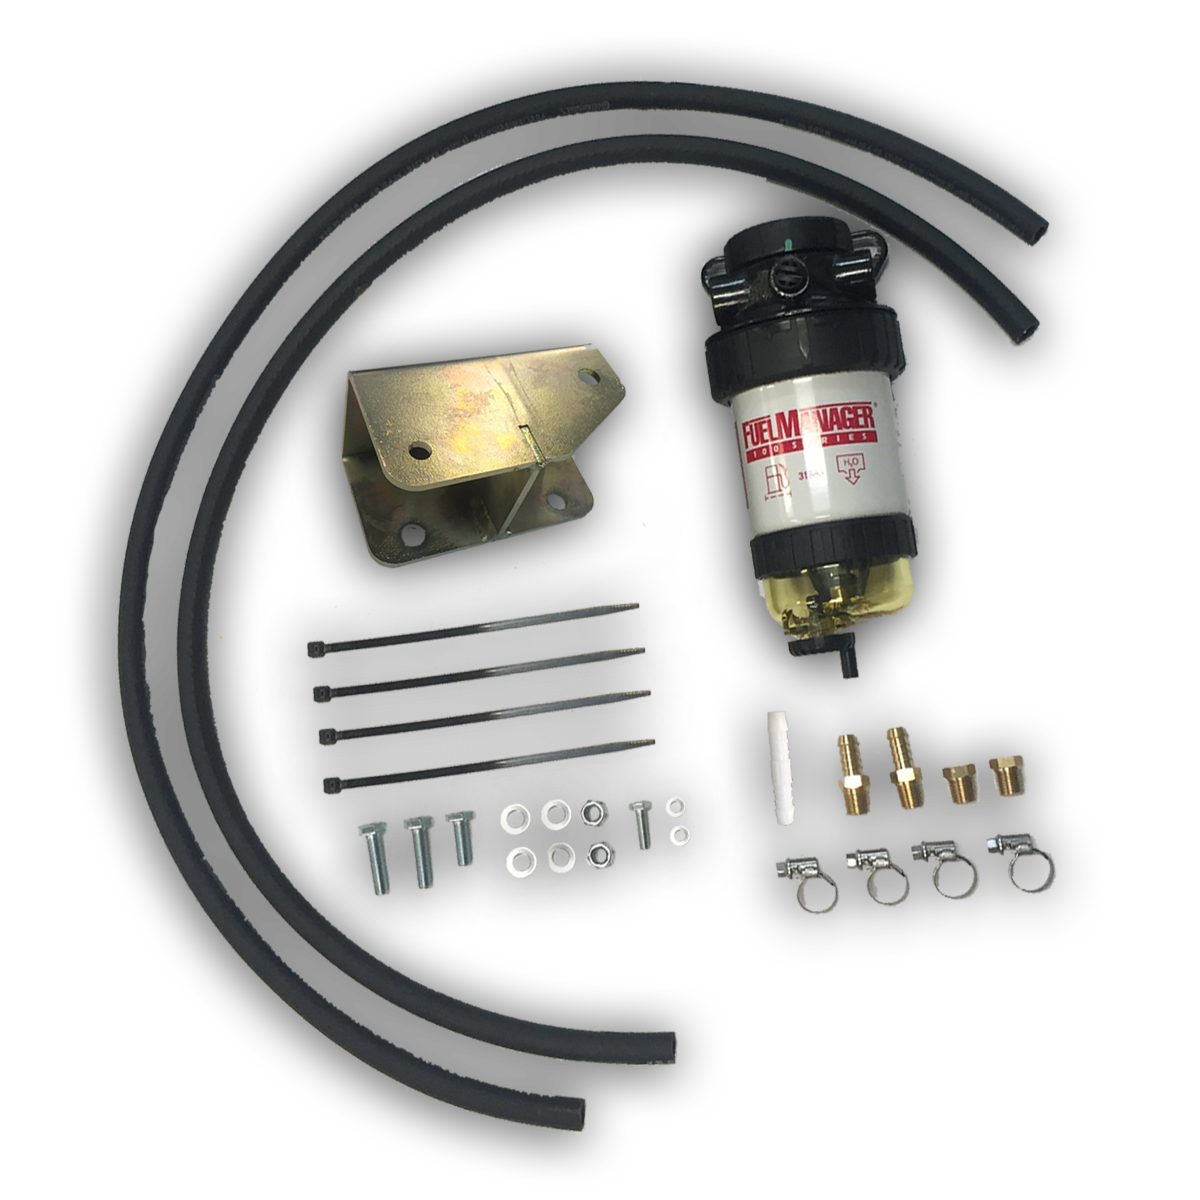 Toyota Hilux 2005 2015 3l Diesel Primary Pre Fuel Filter Kit Filters By Dimensions Brown Davis Long Range Tanks Underbody Protection Roll Cages And Motorsport